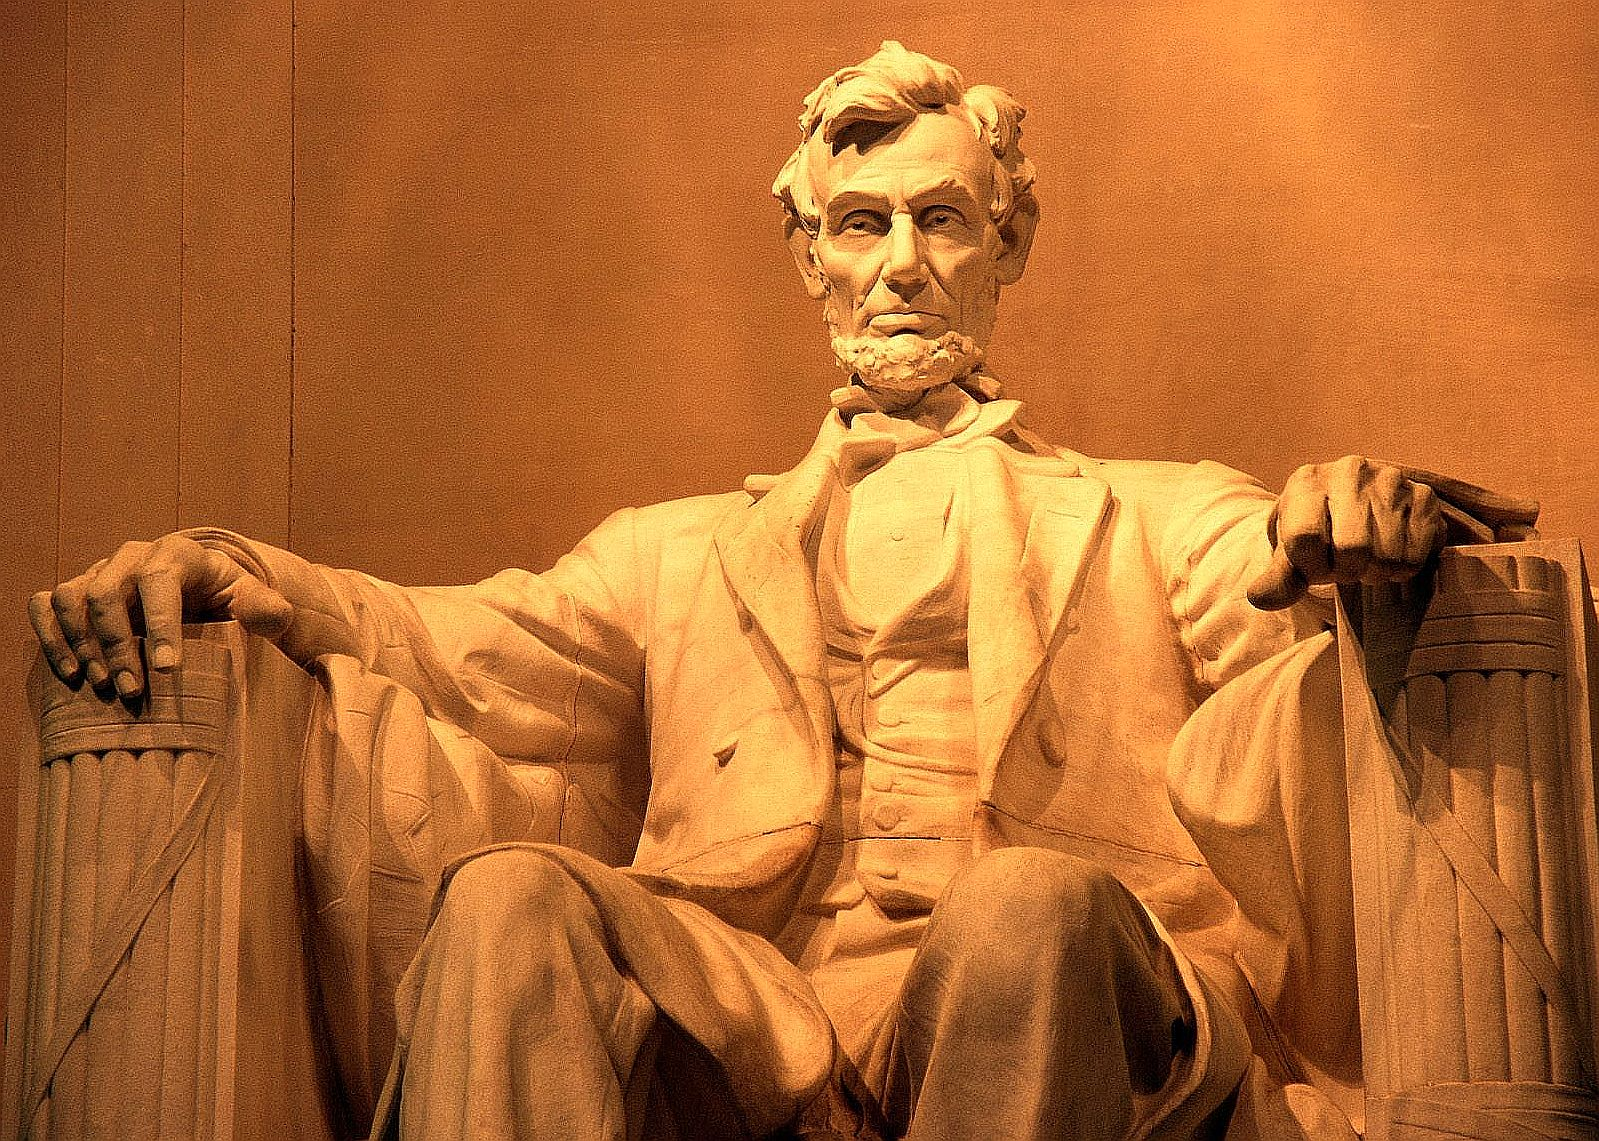 Honest_Abe_Lincoln_Memorial_Washington_DC